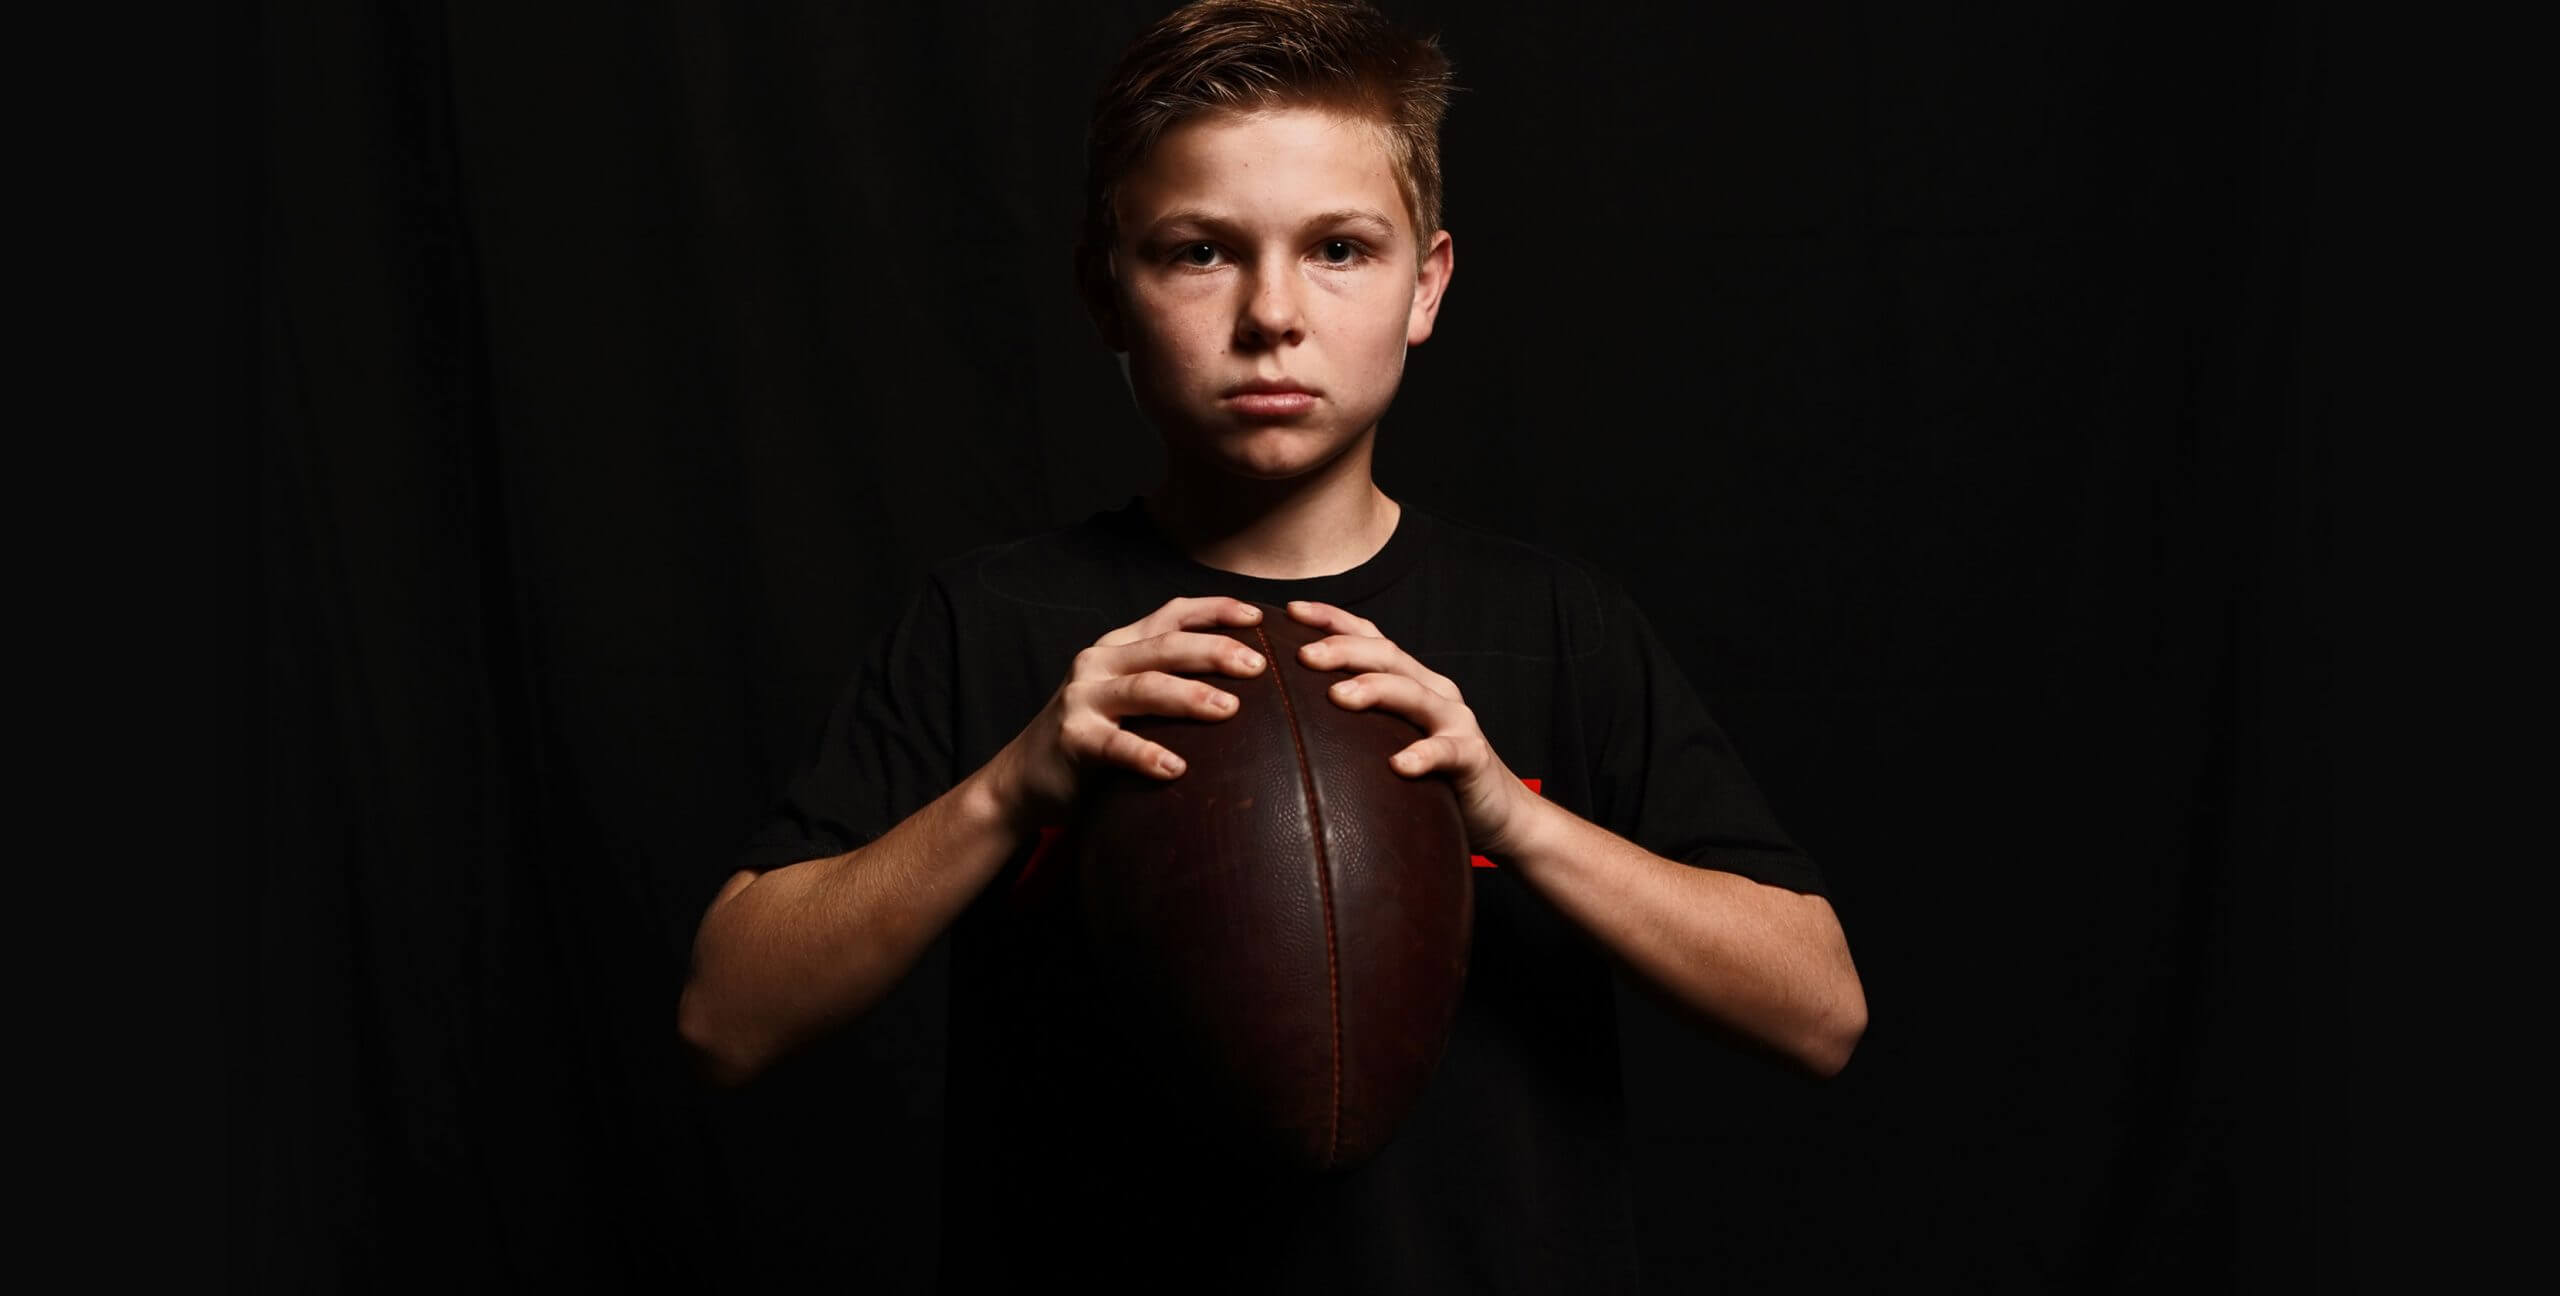 Young boy holding a football.